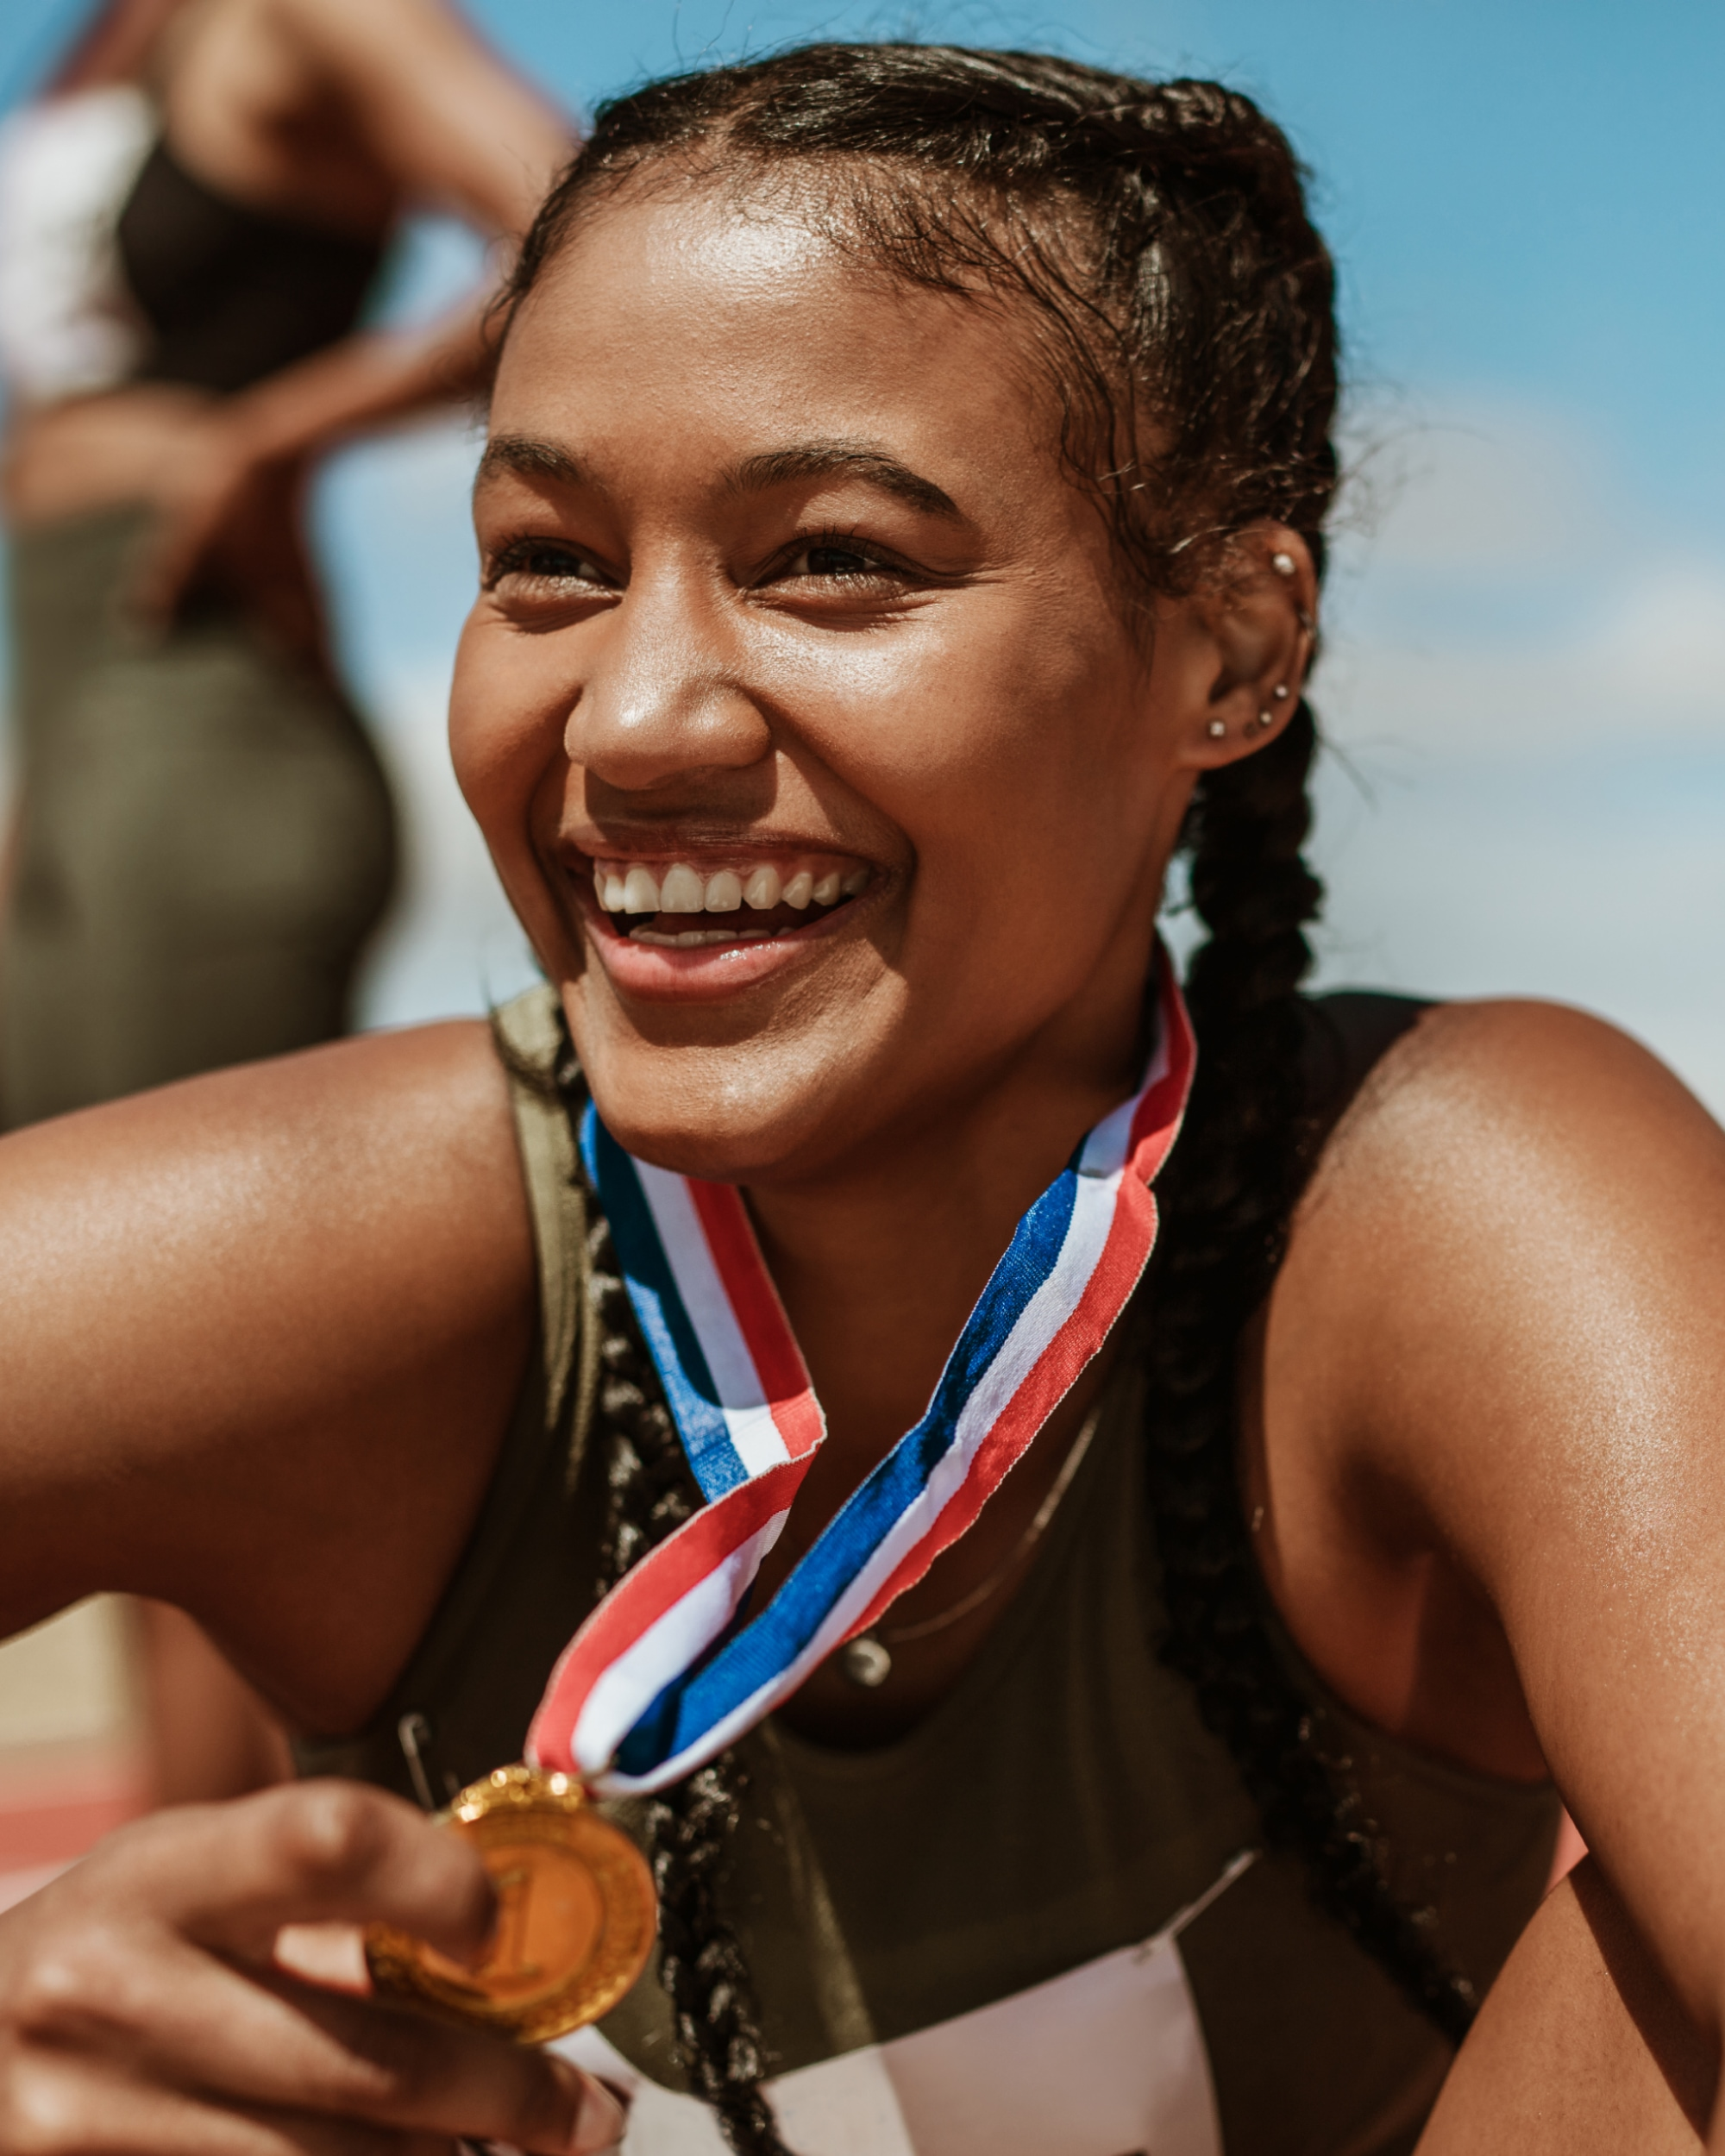 Girl with sports medal